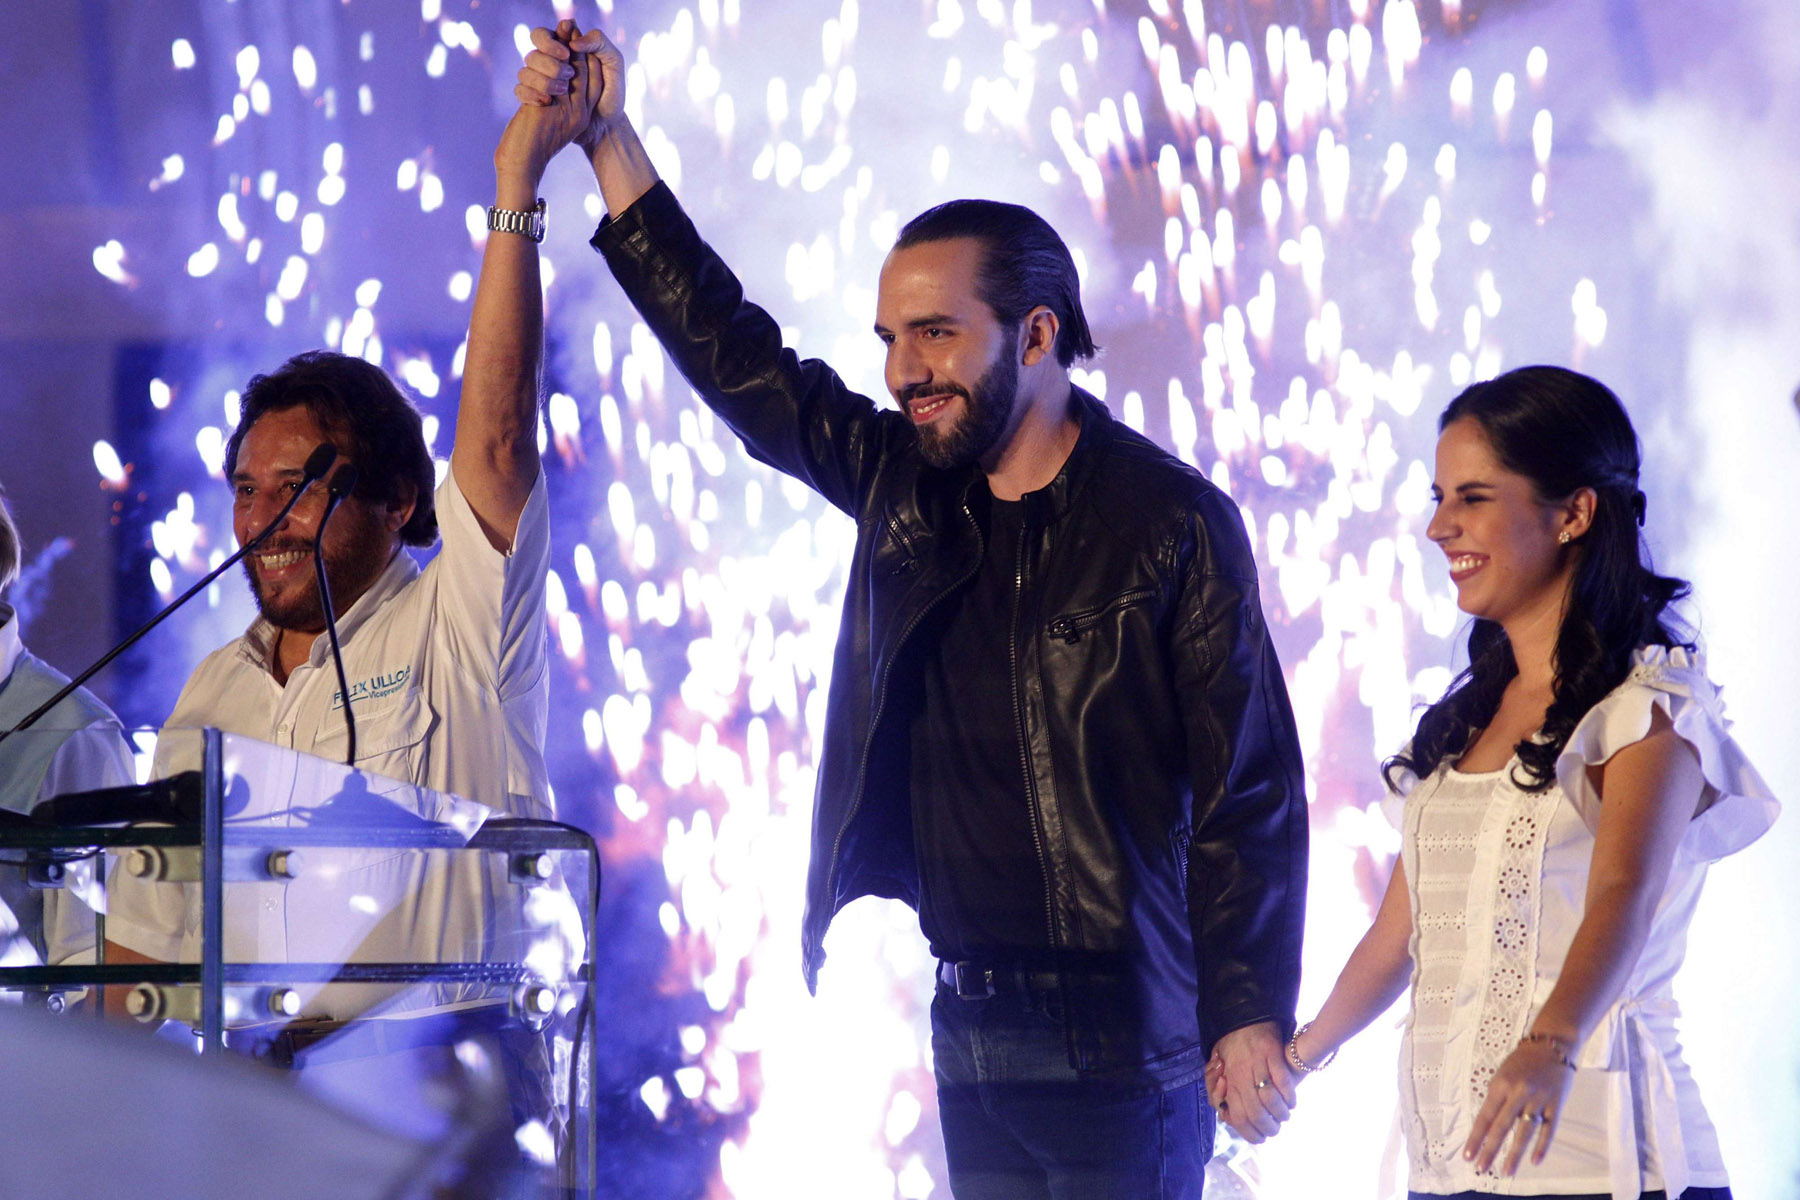 Smart popularity. Bukele, of the Grand Alliance for National Unity (C) his wife Gabriela, (R) and the Vice-president candidate Felix Ulloa wave supporters in San Salvador, El Salvador, February 3. (AP)